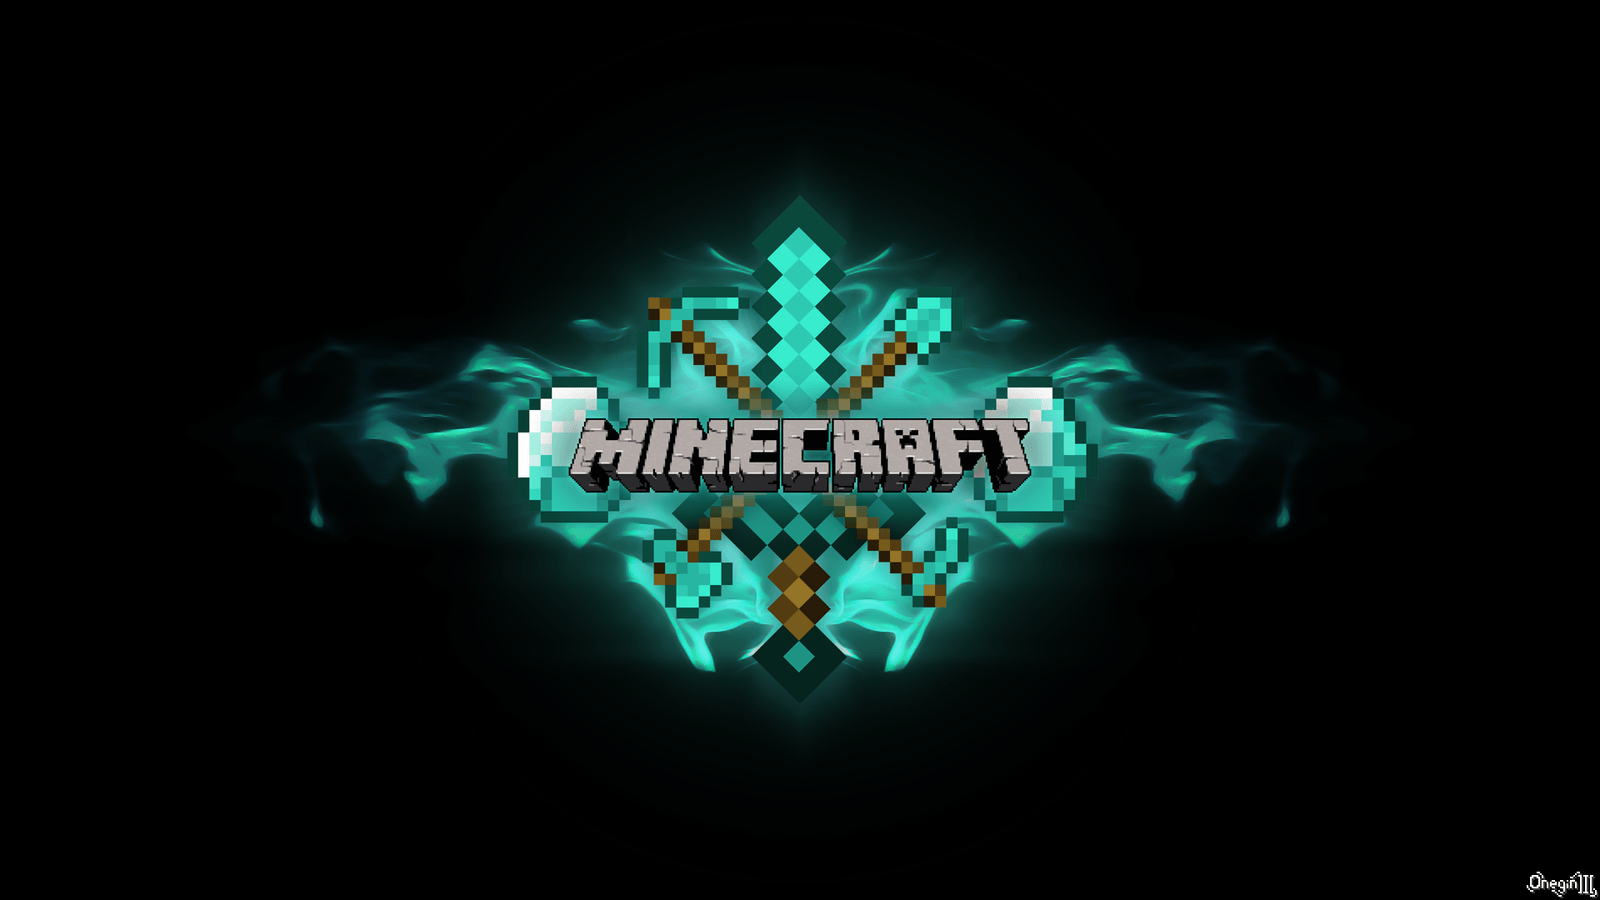 Minecraft Image Wallpapers 1600x900